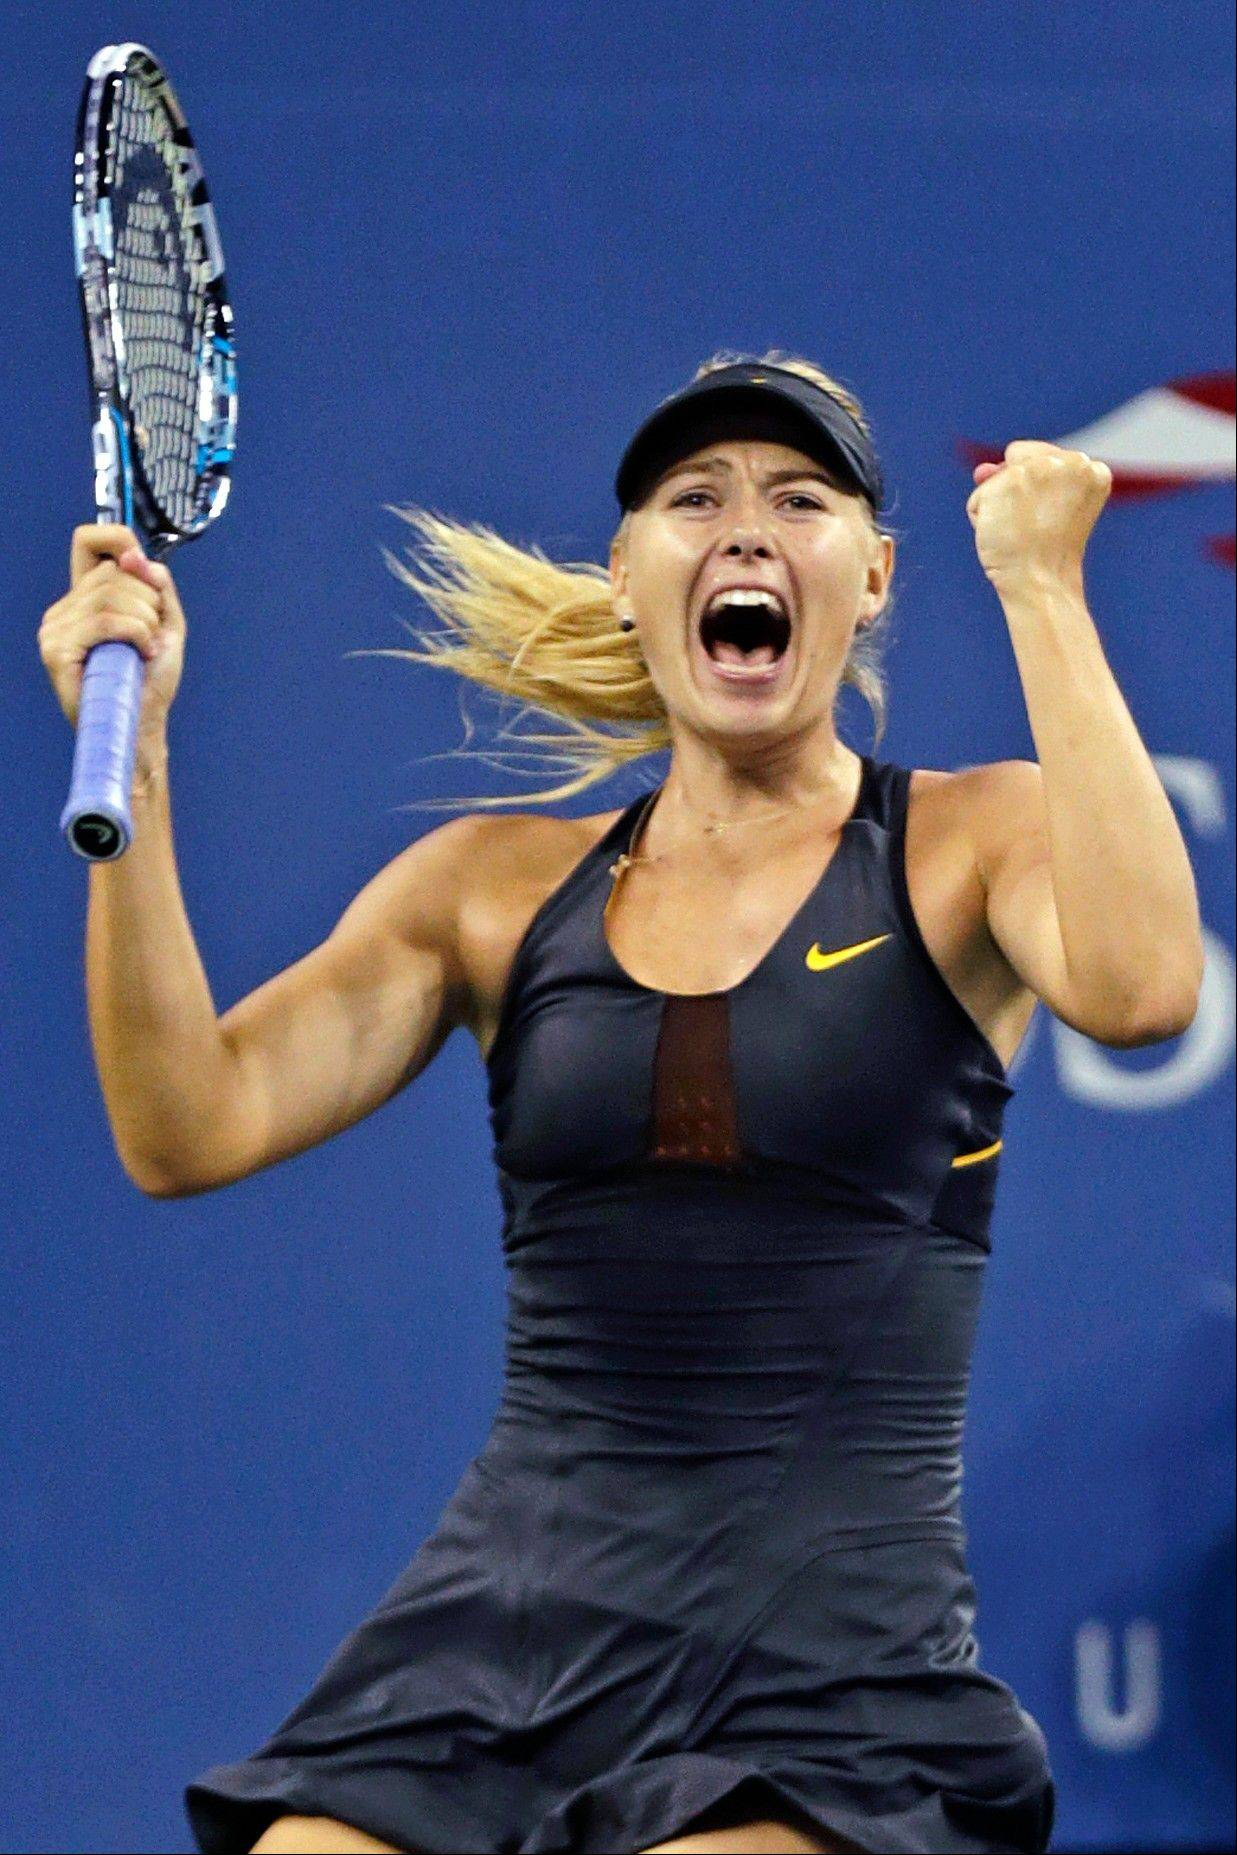 Sharapova gets past Petrova in 3 sets at US Open